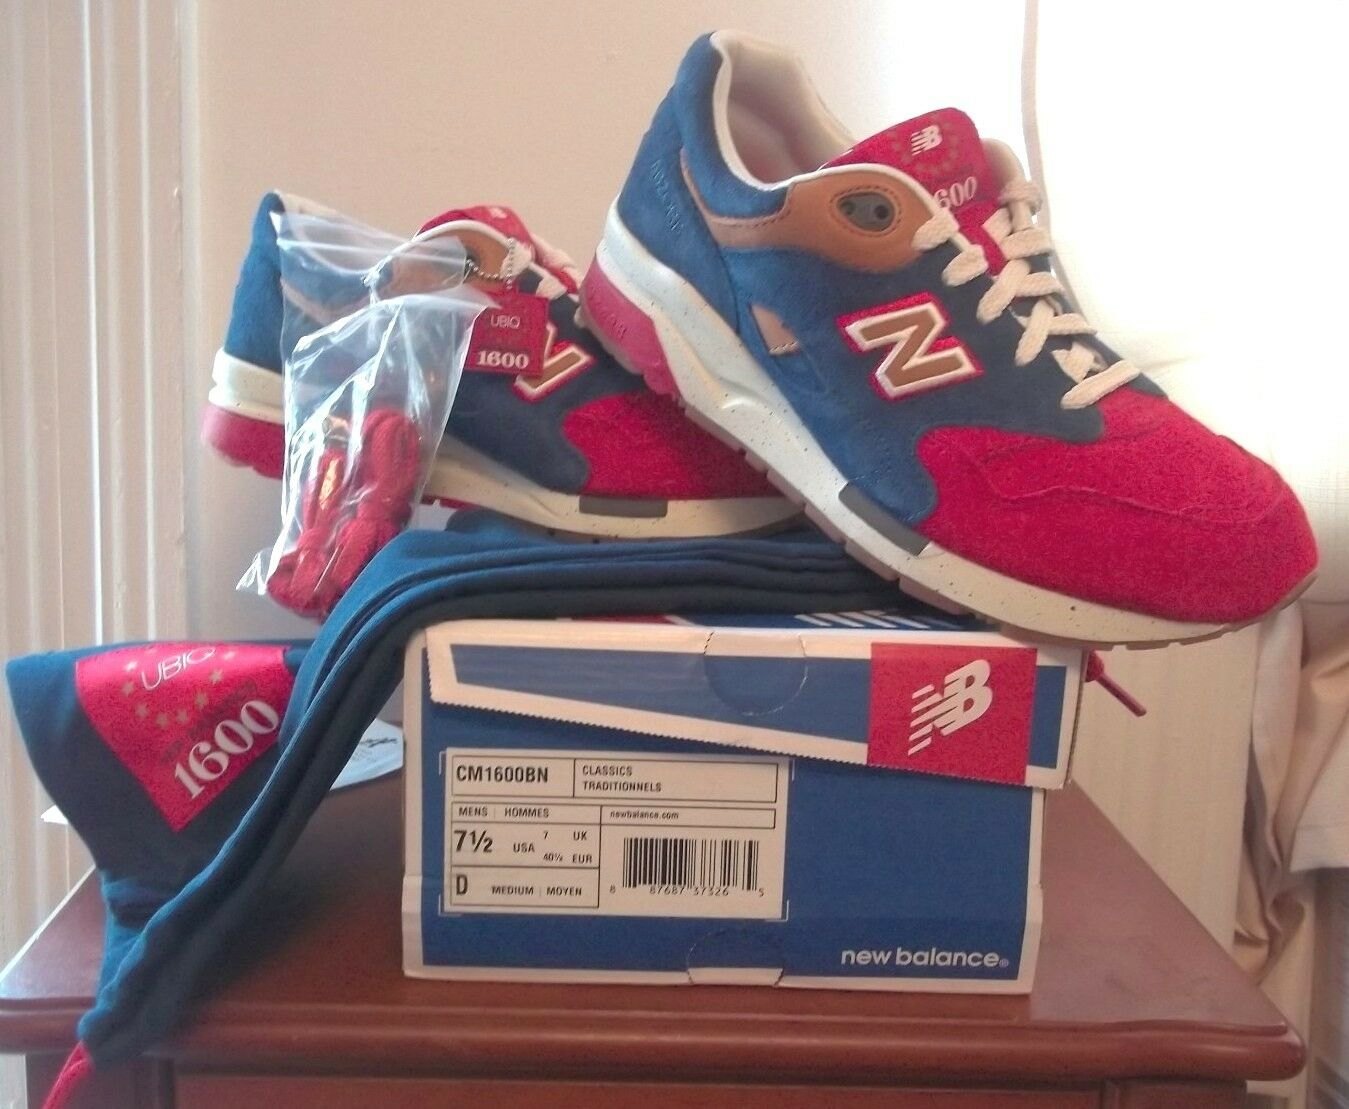 2013 UBIQ x New Balance 1600 THE BENJAMIN size 7.5 4th of july independence day